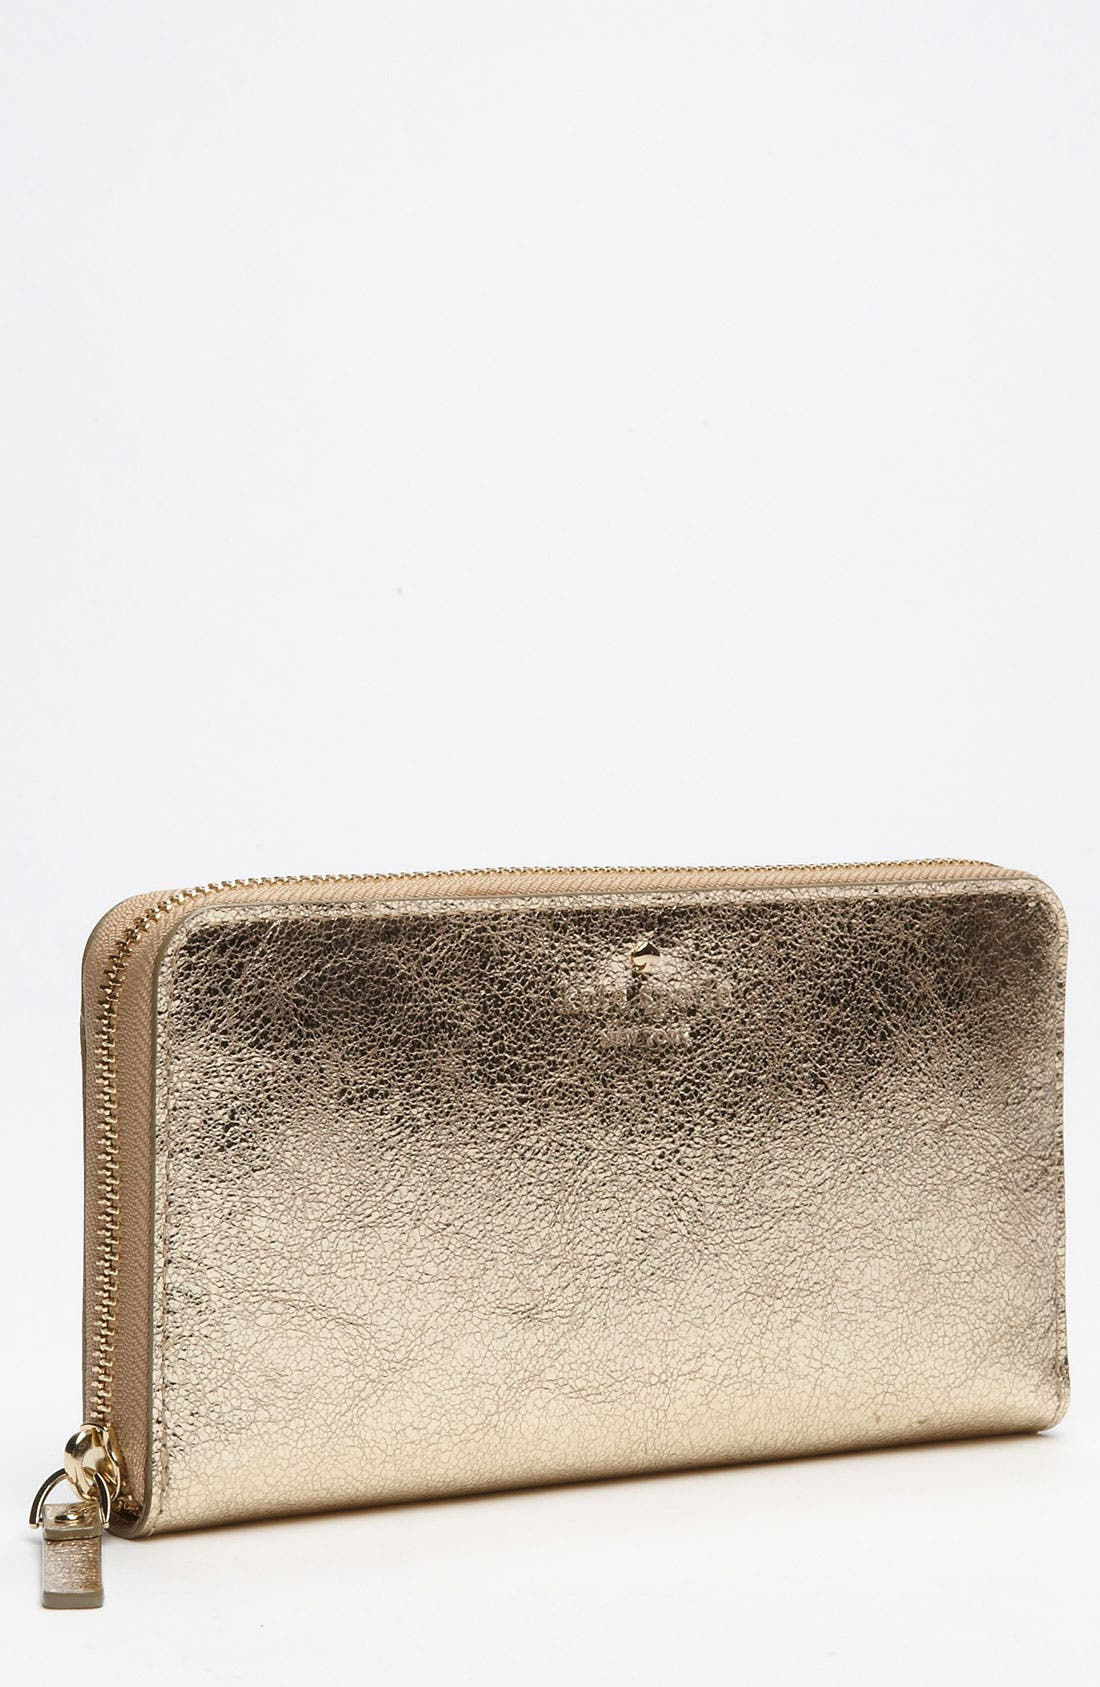 Alternate Image 1 Selected - kate spade new york 'harrison street - metallic lacey' wallet